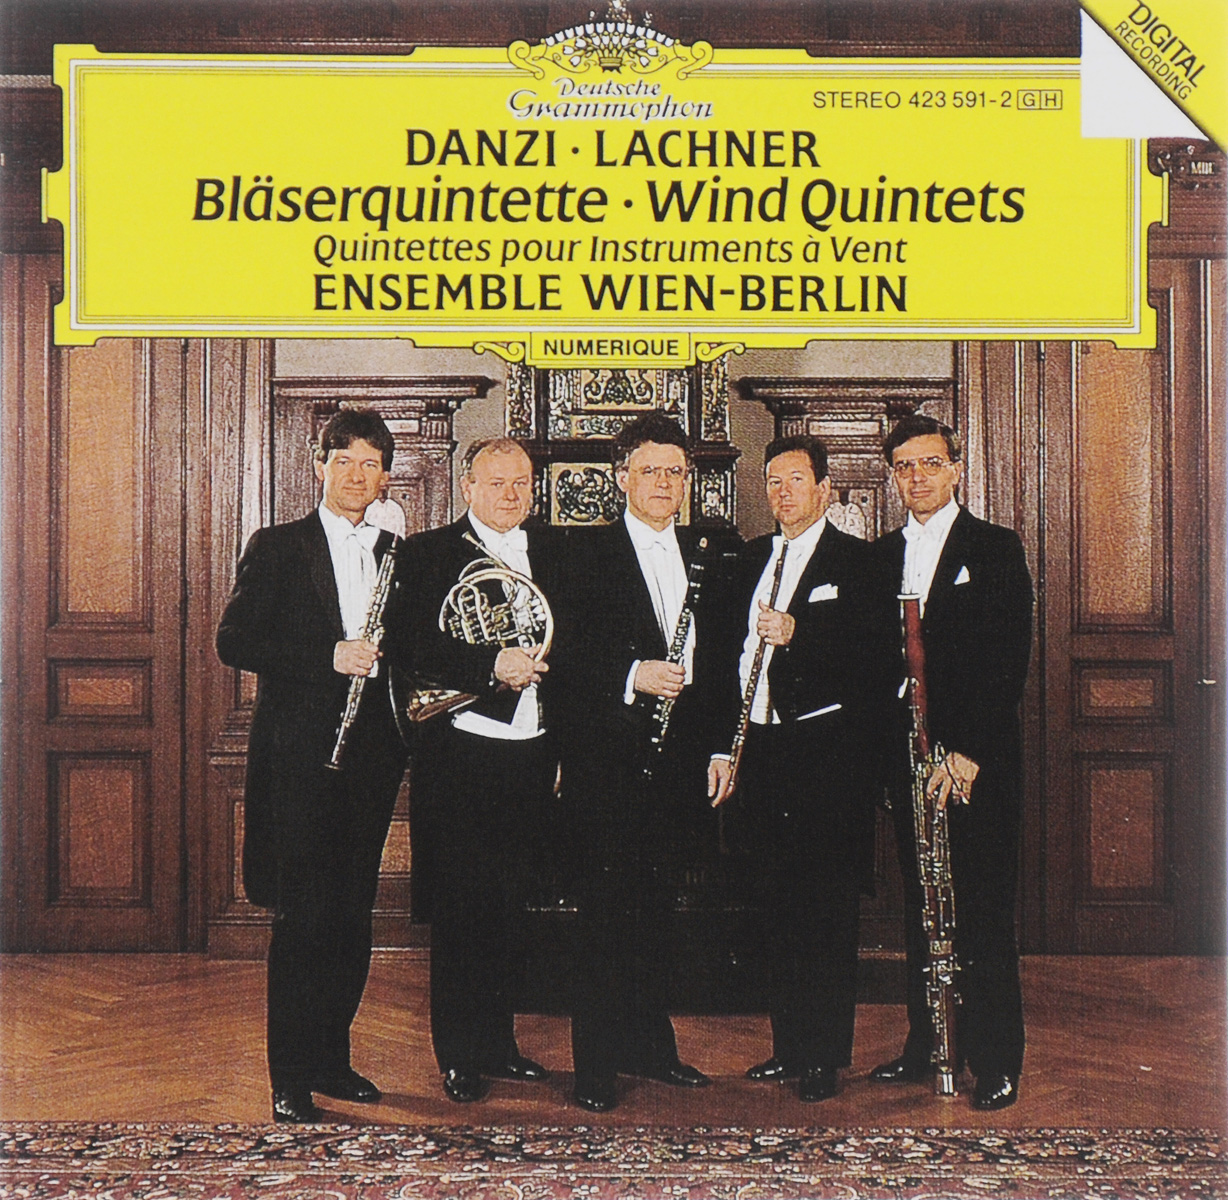 Ensemble Wien-Berlin Ensemble Wien-Berlin. Danzi / Lachner. Blaserquintette халат домашний five wien home five wien home mp002xm0ydev